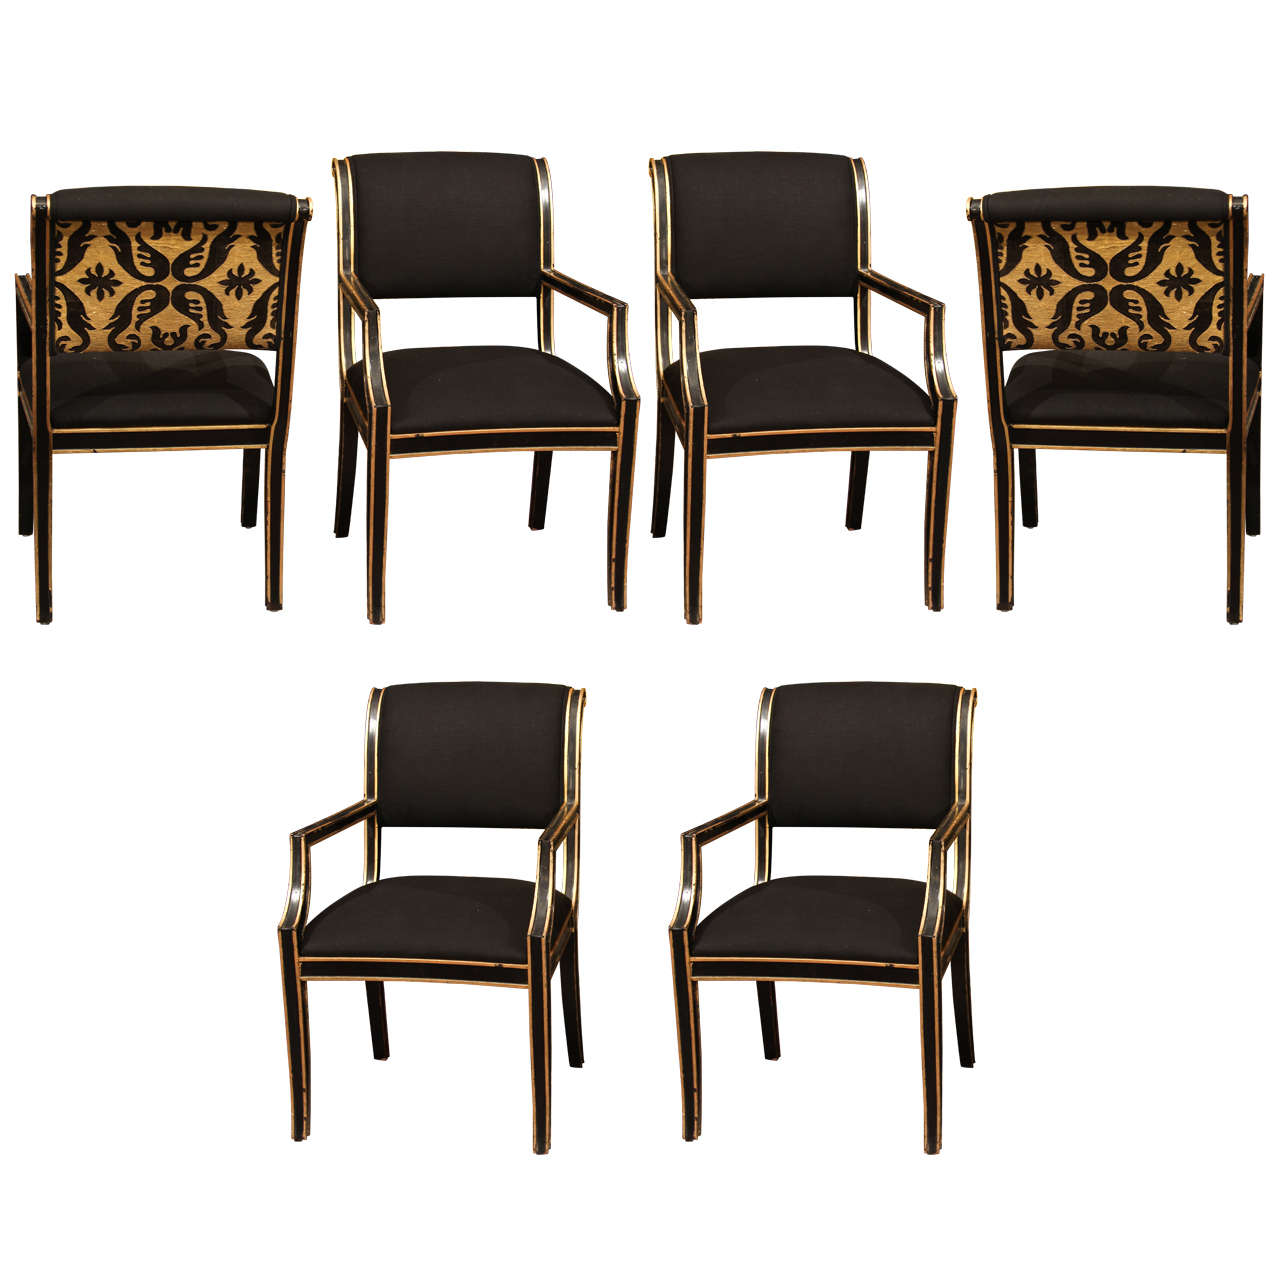 Six Handsome Chairs in Black Linen For Sale